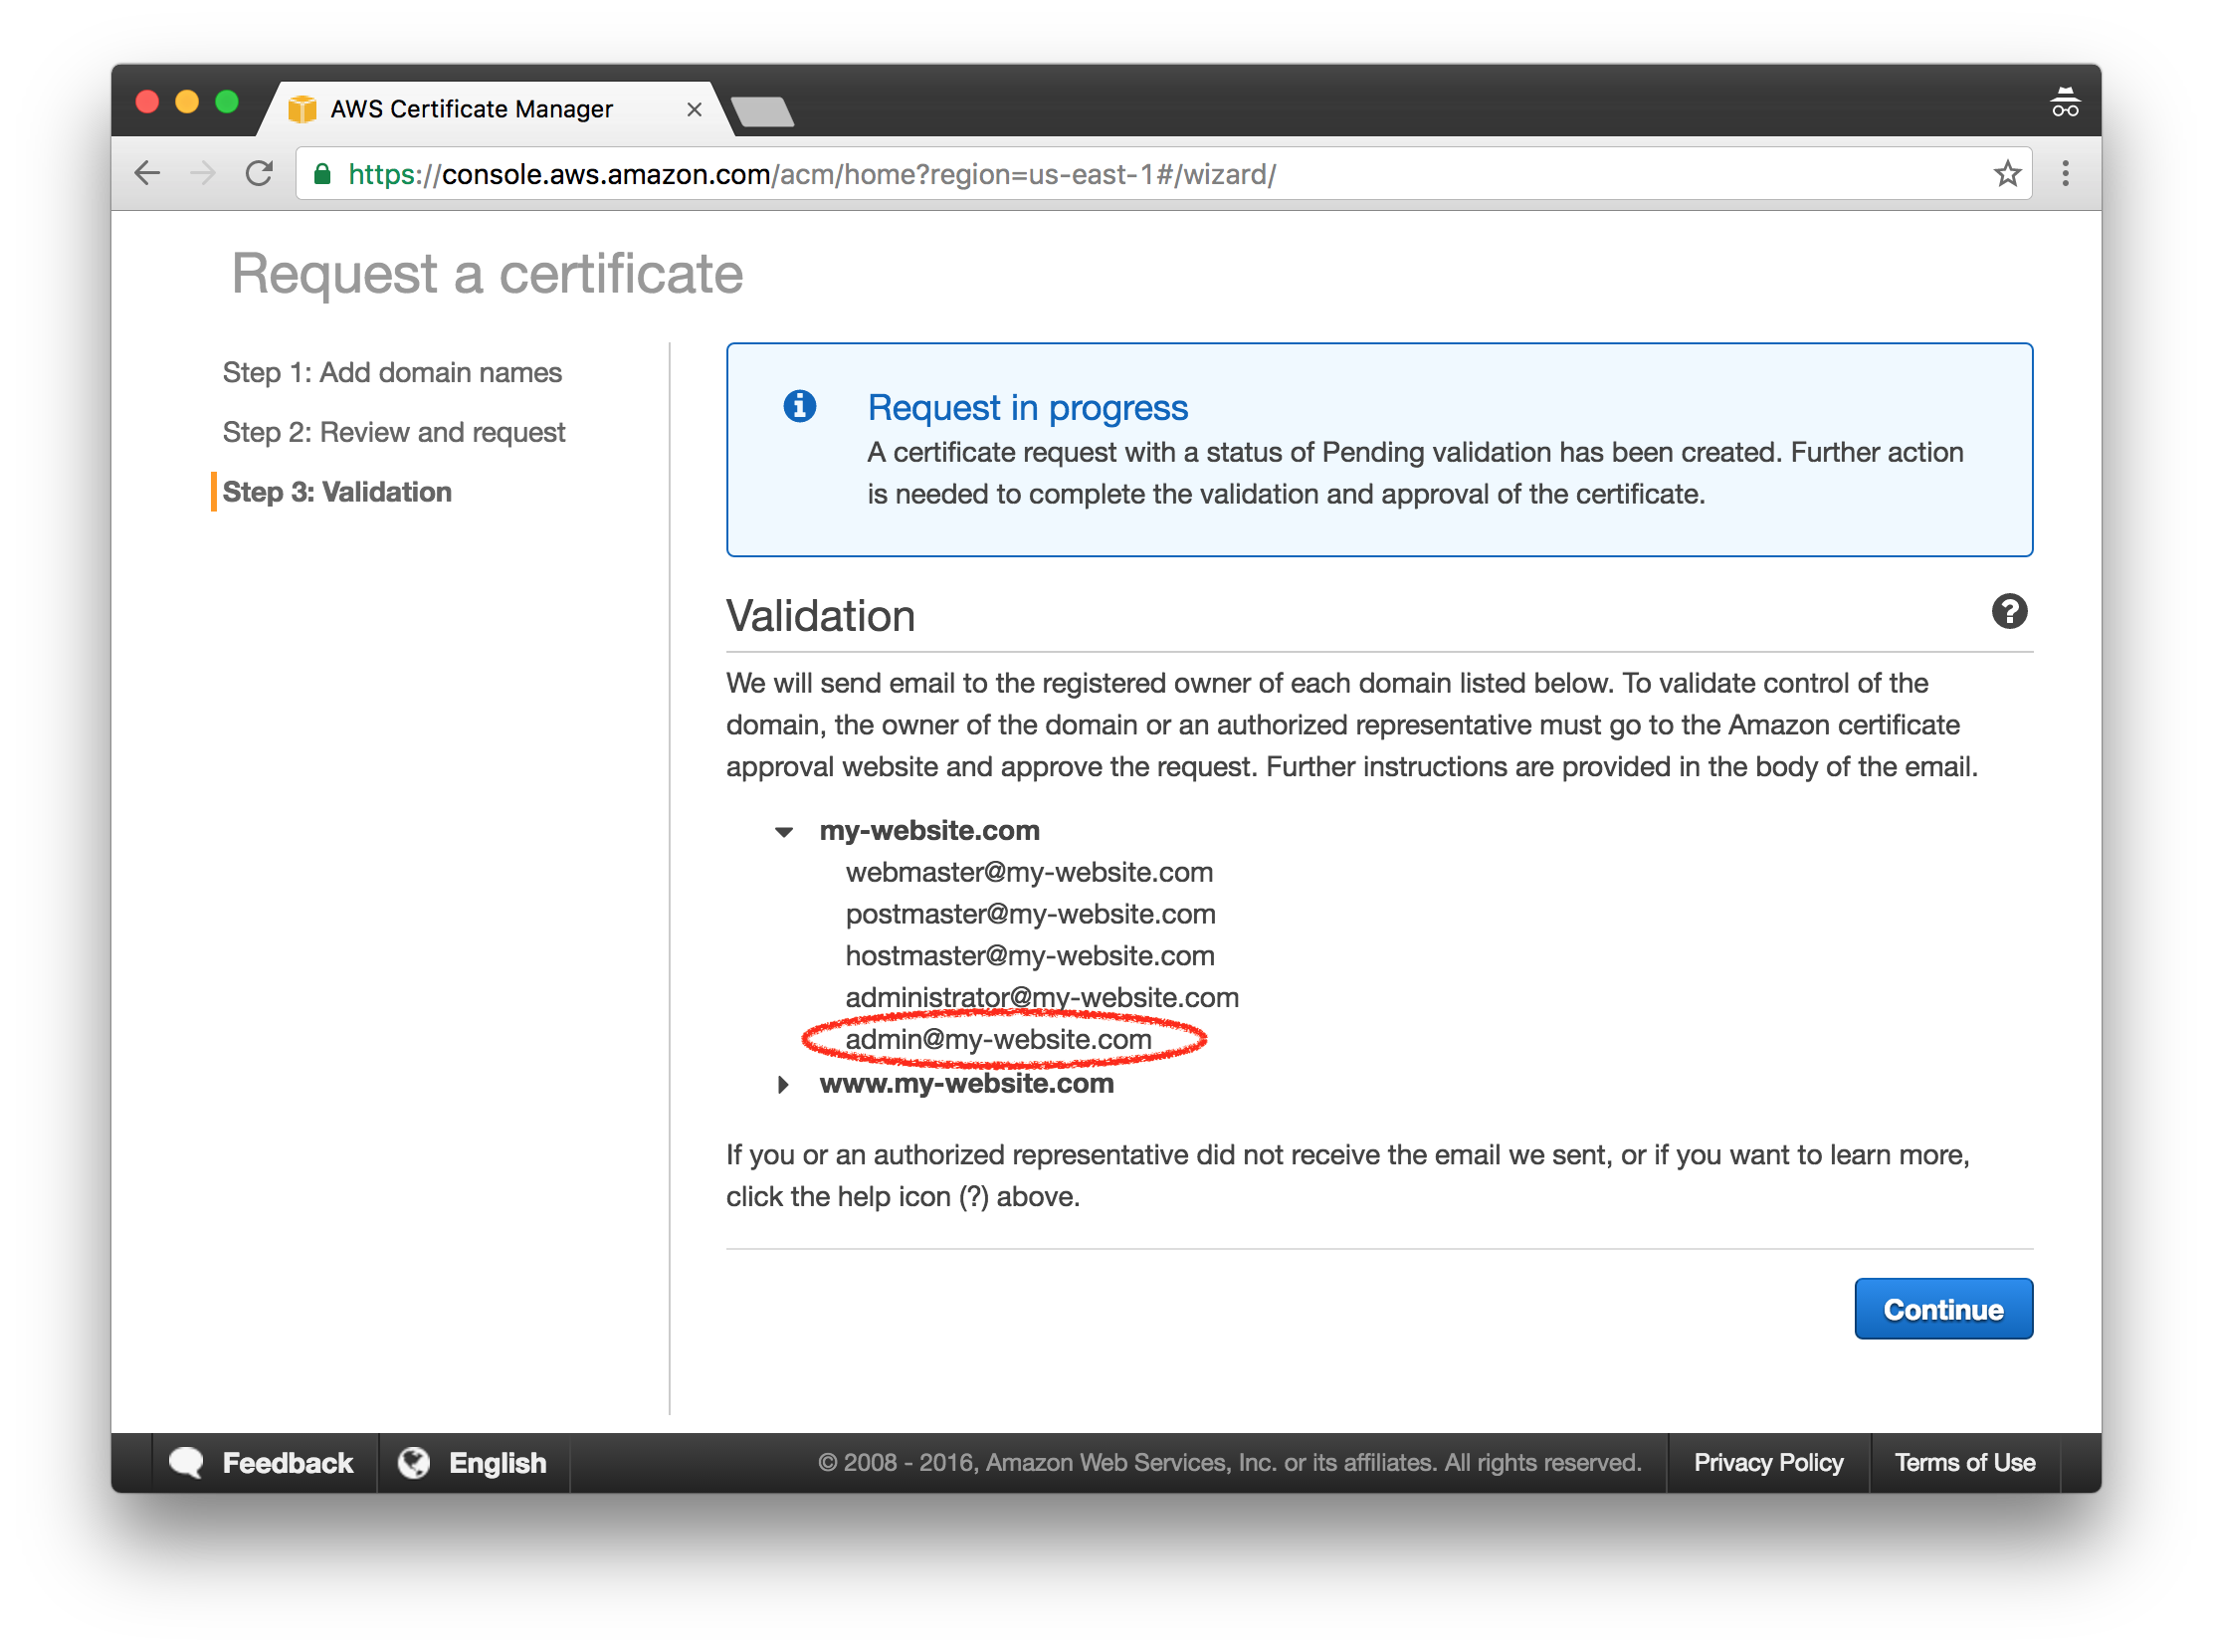 Host a static site on aws using s3 and cloudfront david baumgold aws certificate manager validation in progress 1betcityfo Choice Image